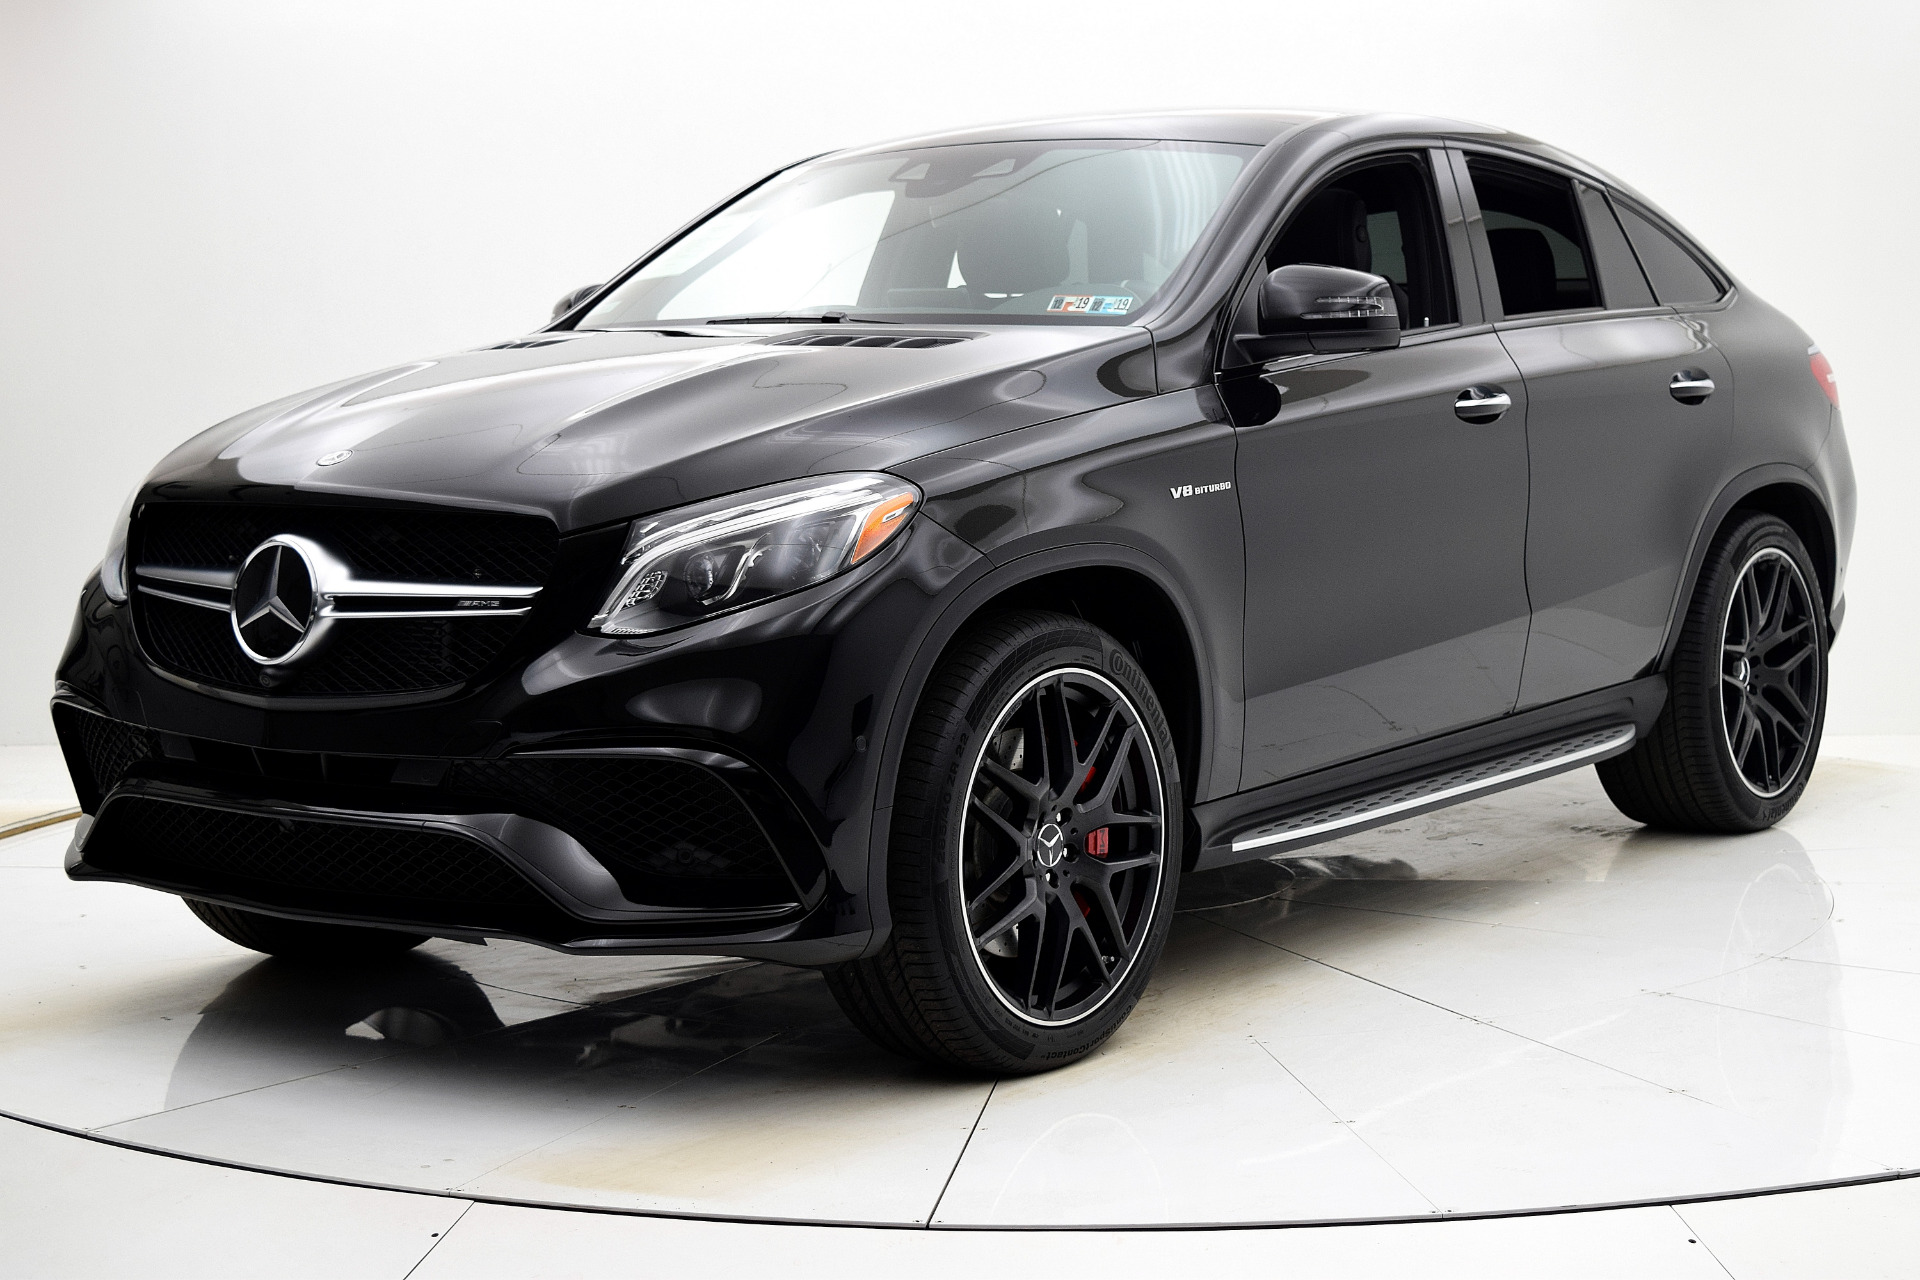 Used 2019 Mercedes-Benz GLE AMG GLE 63 S for sale Sold at F.C. Kerbeck Aston Martin in Palmyra NJ 08065 2